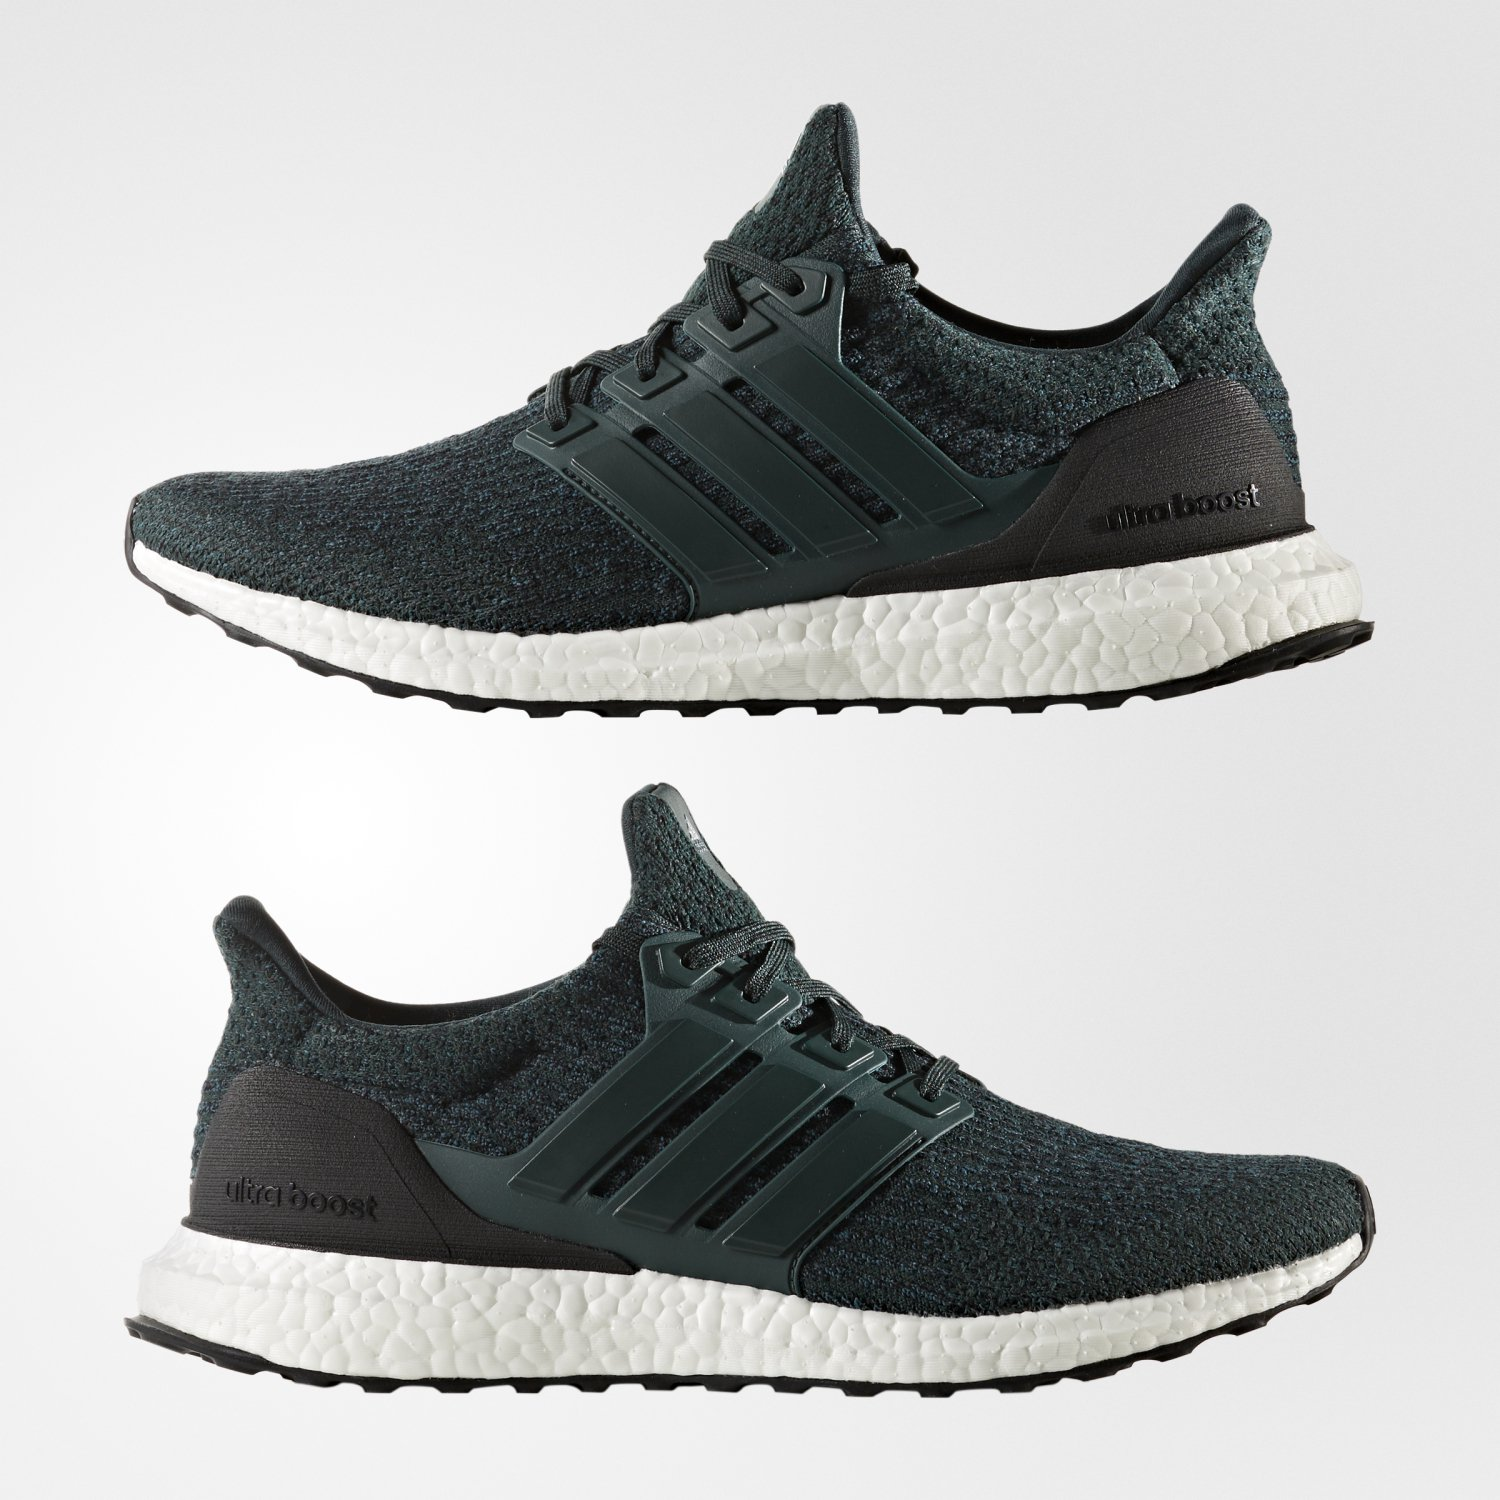 adidas-ultra-boost-wool-s82024-release-20170922